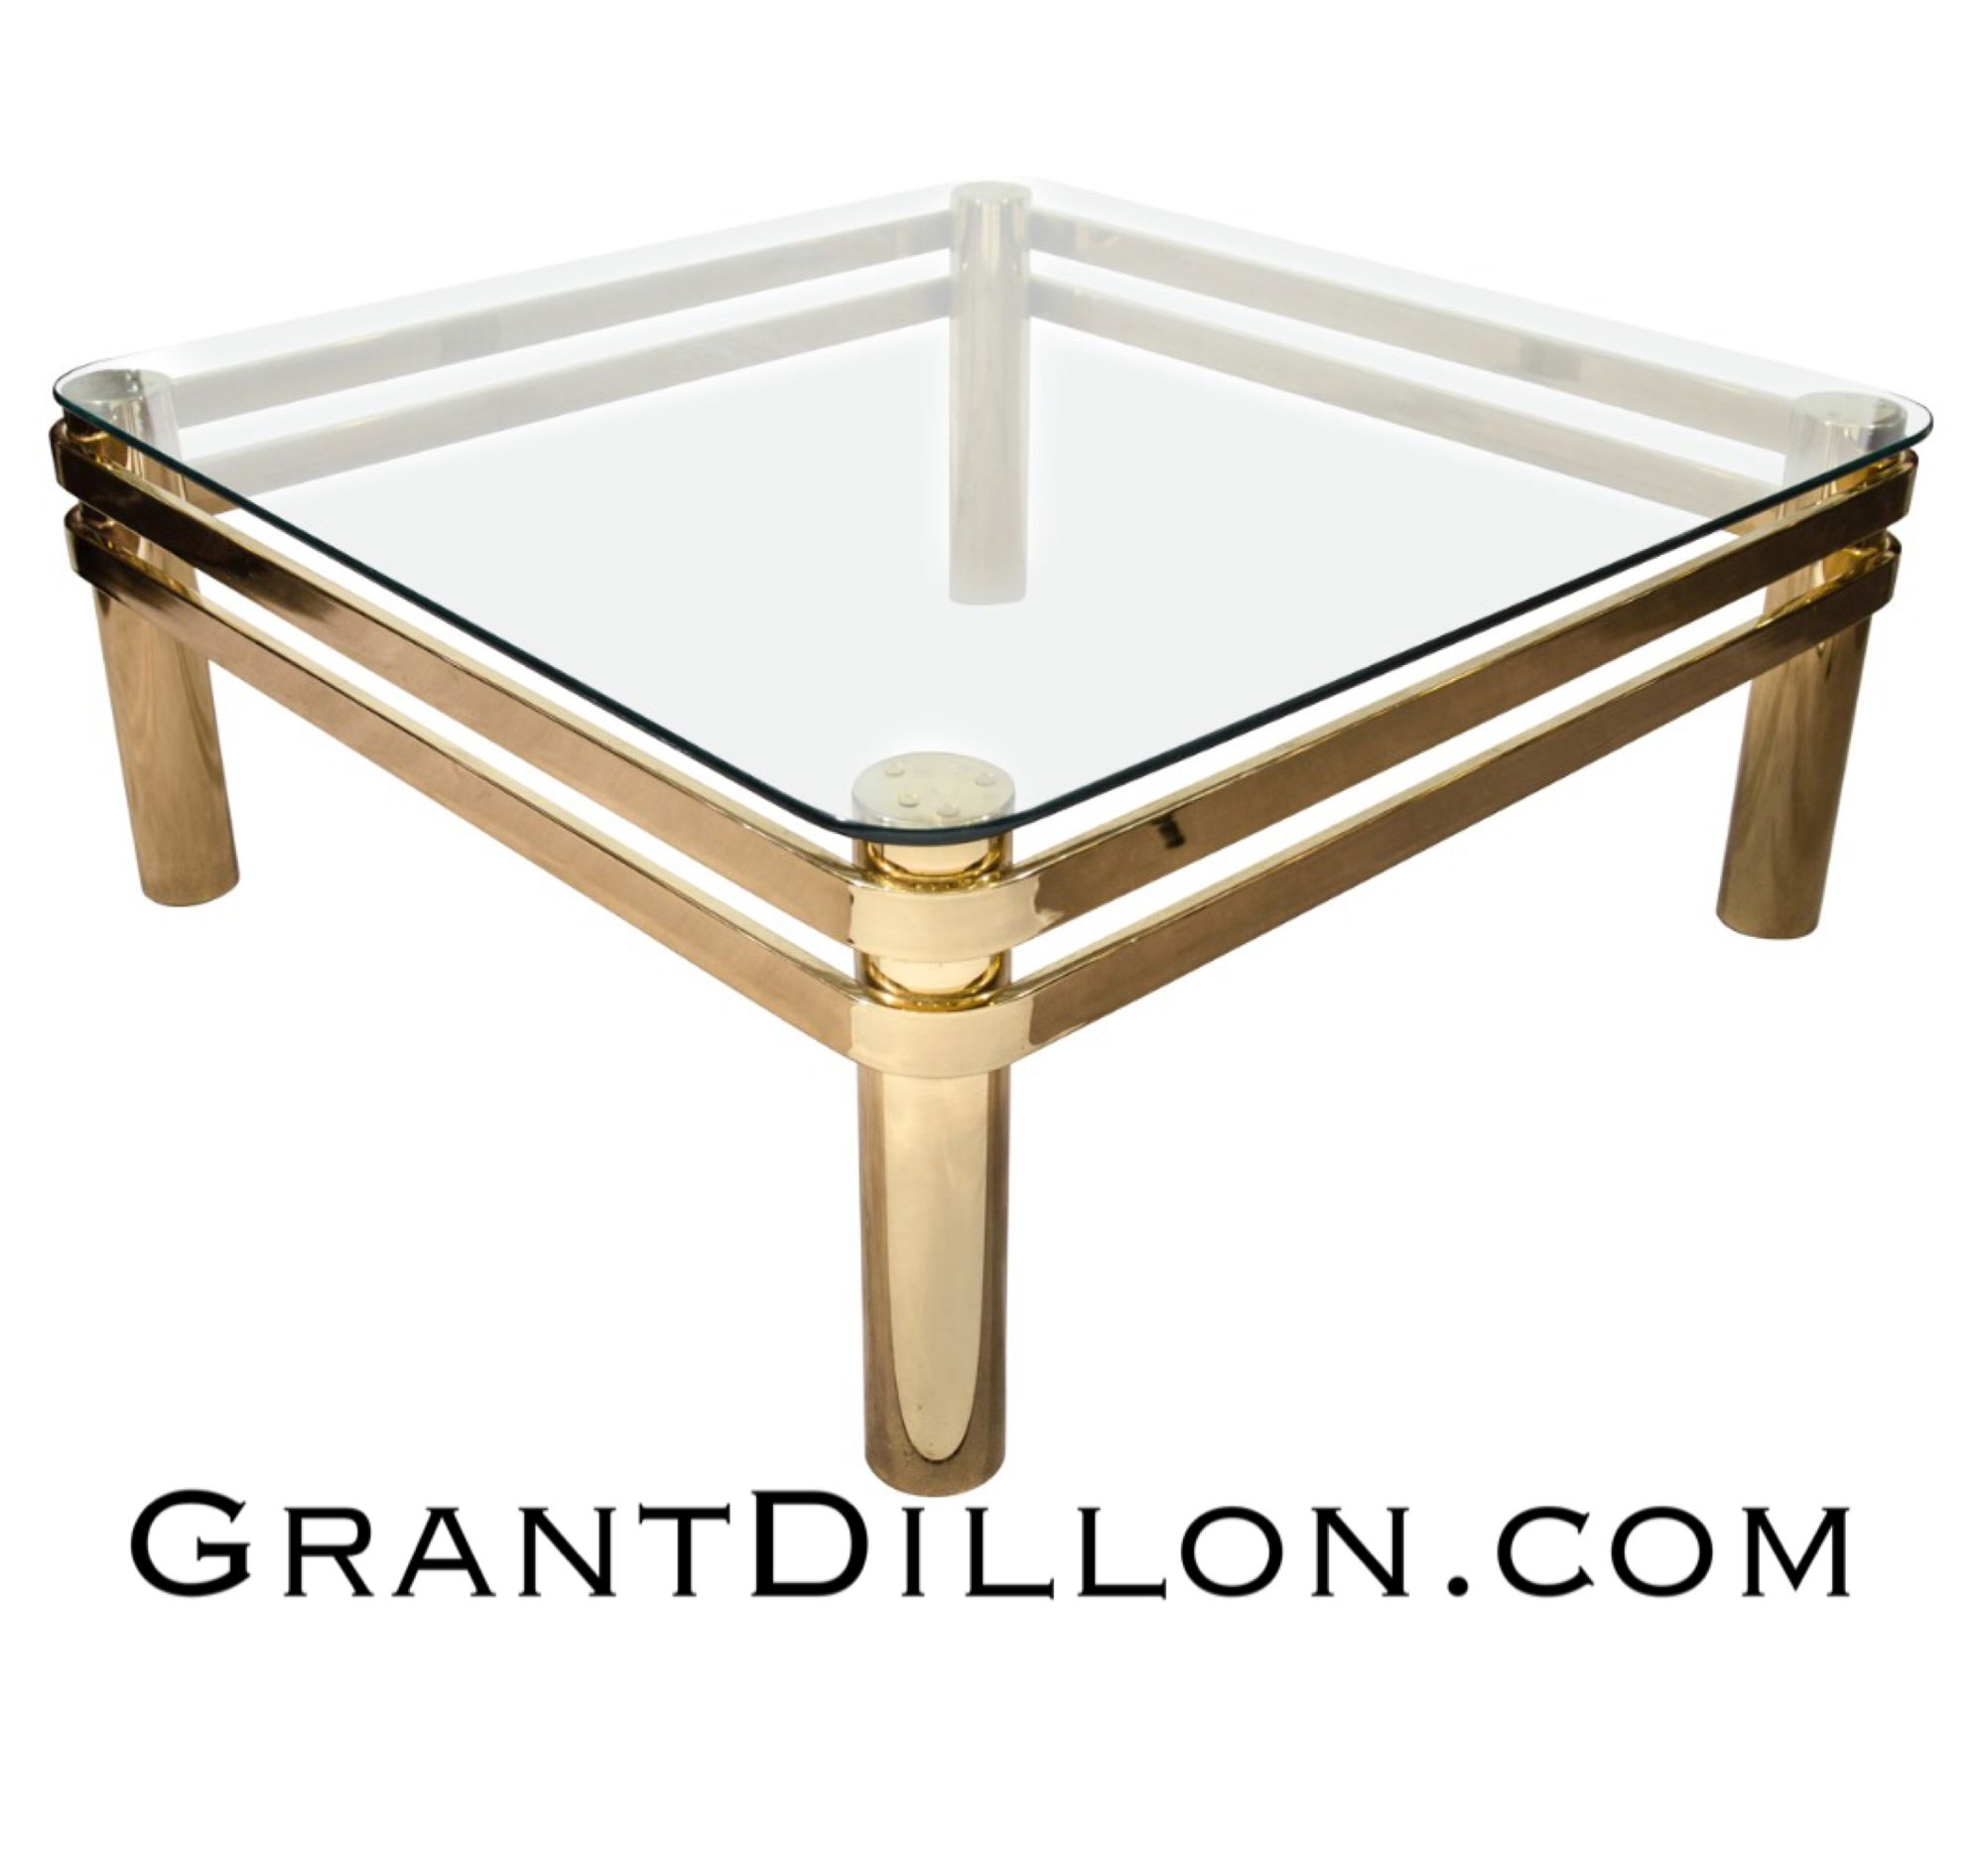 Brass and glass deco inspired coffee table for sale grantdillon